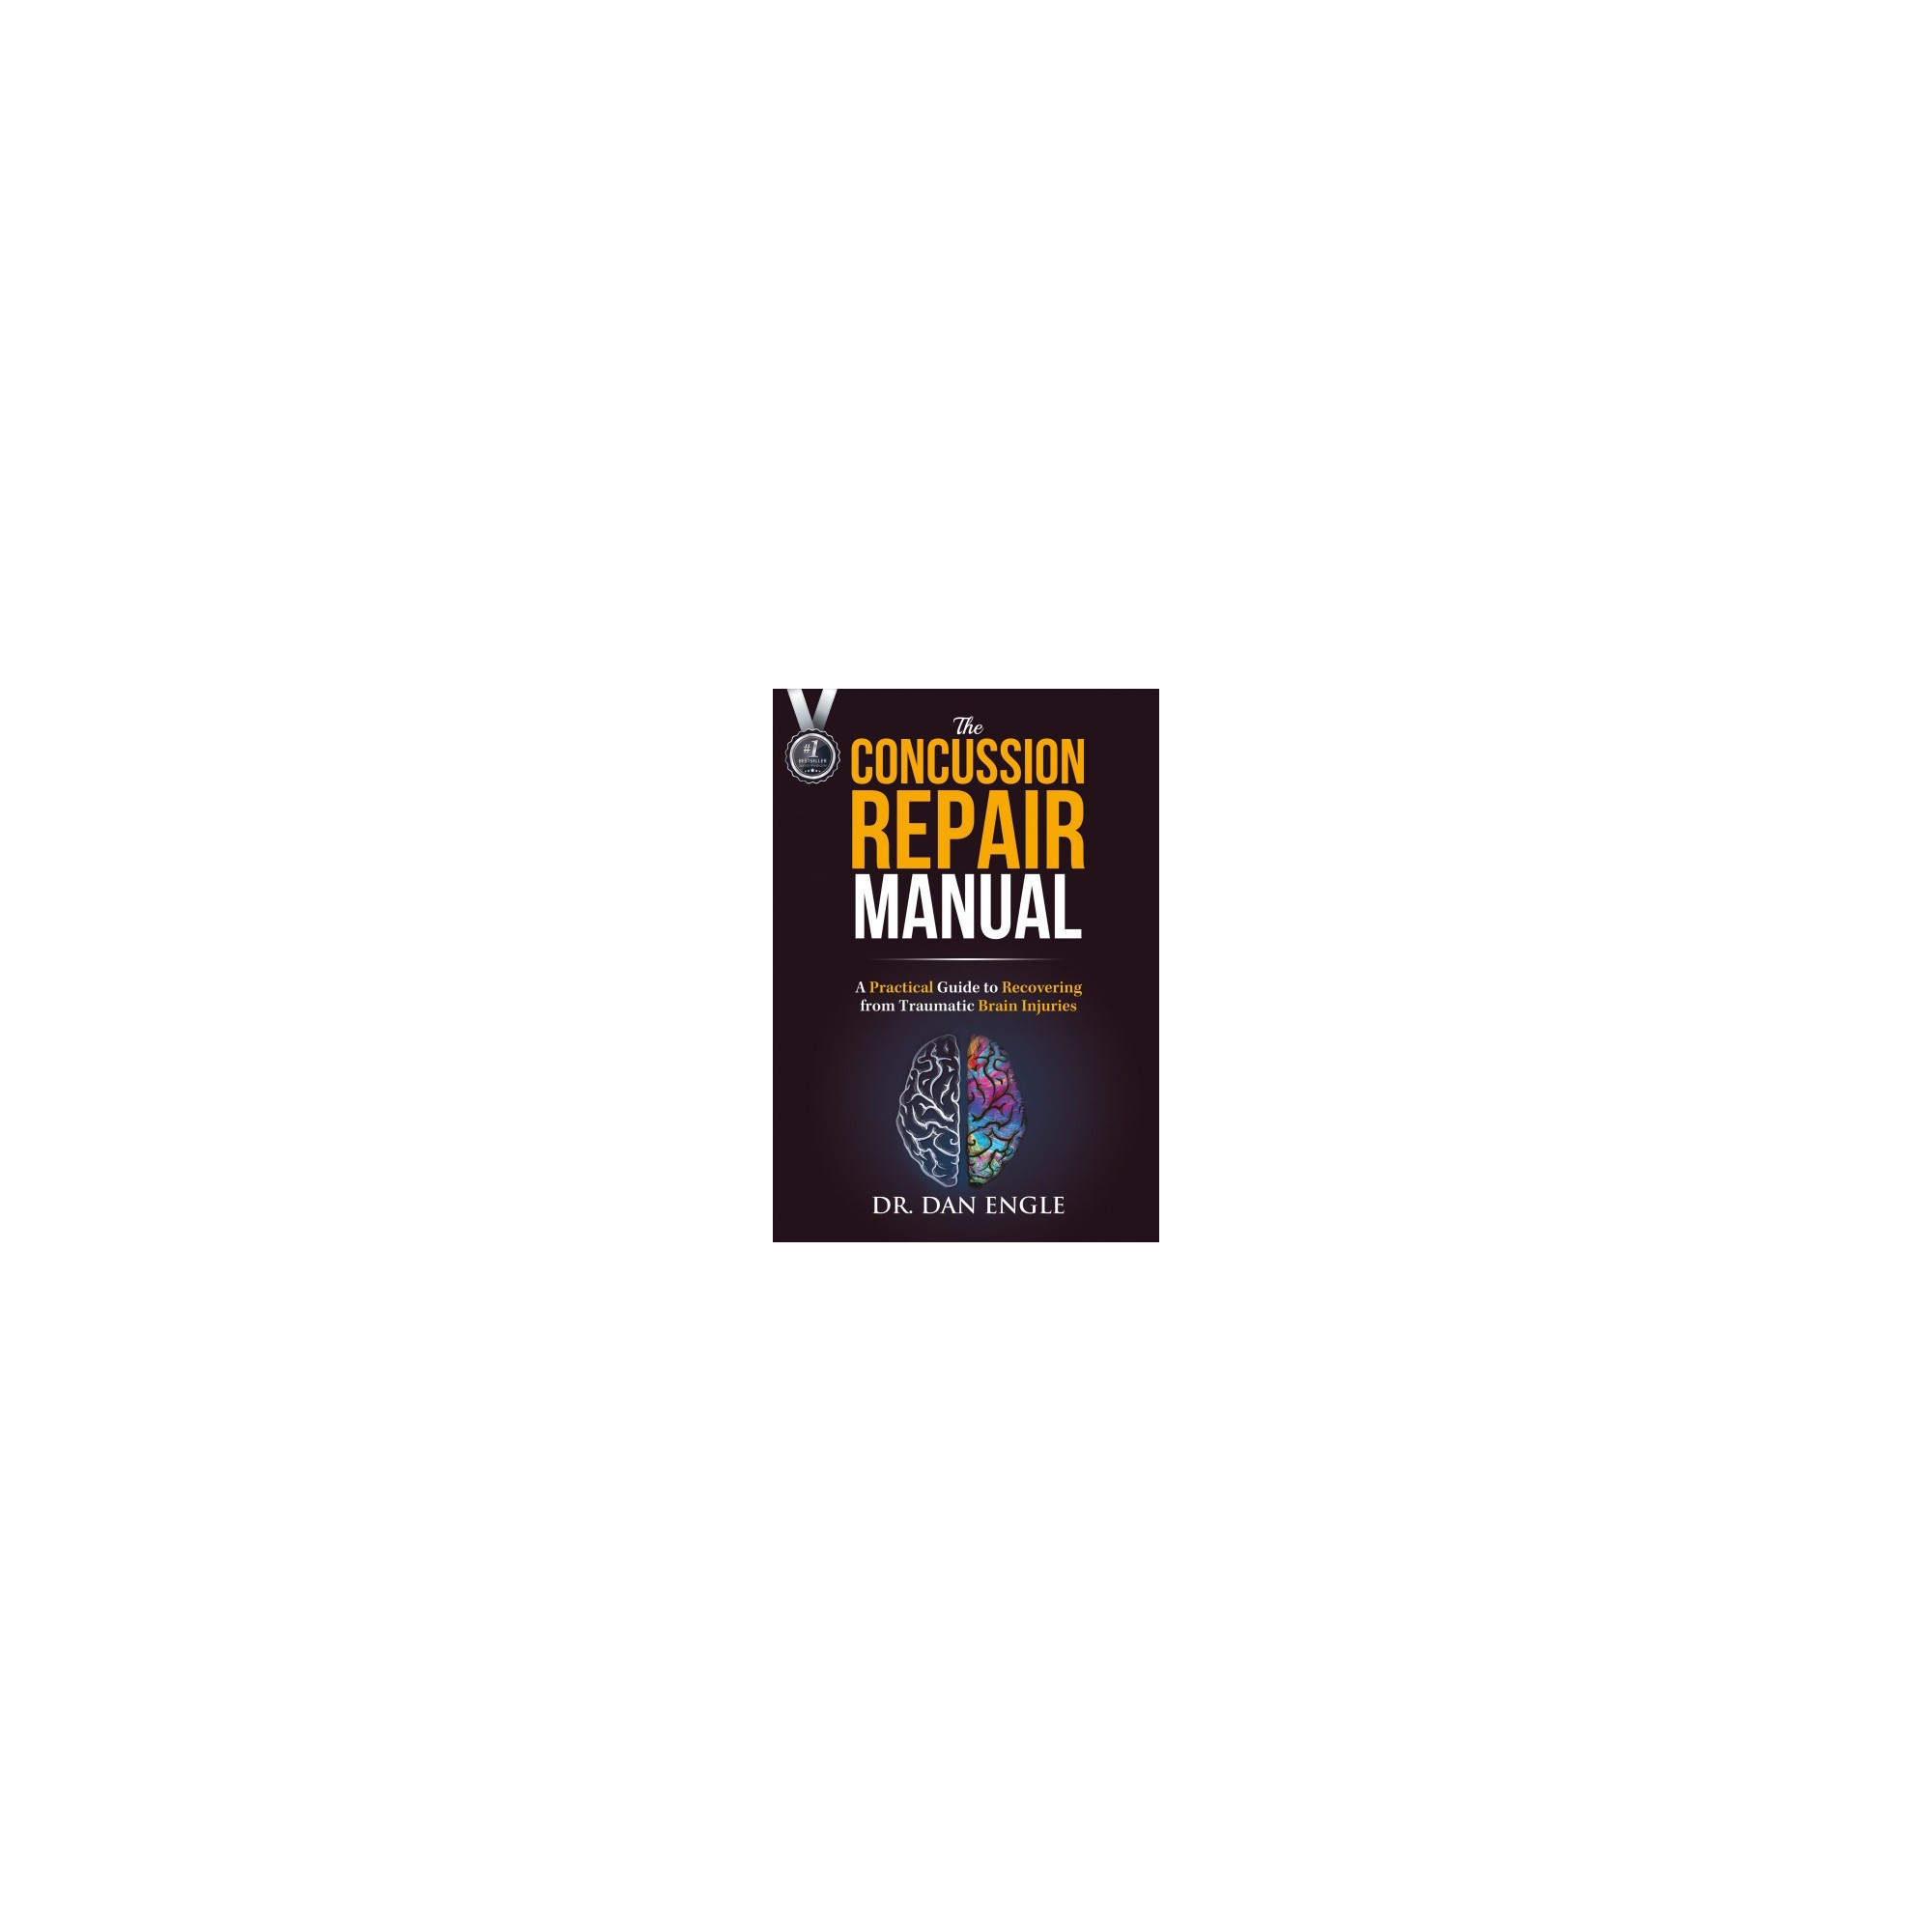 Concussion repair manual a practical guide to recovering from concussion repair manual a practical guide to recovering from traumatic brain injuries paperback fandeluxe Gallery